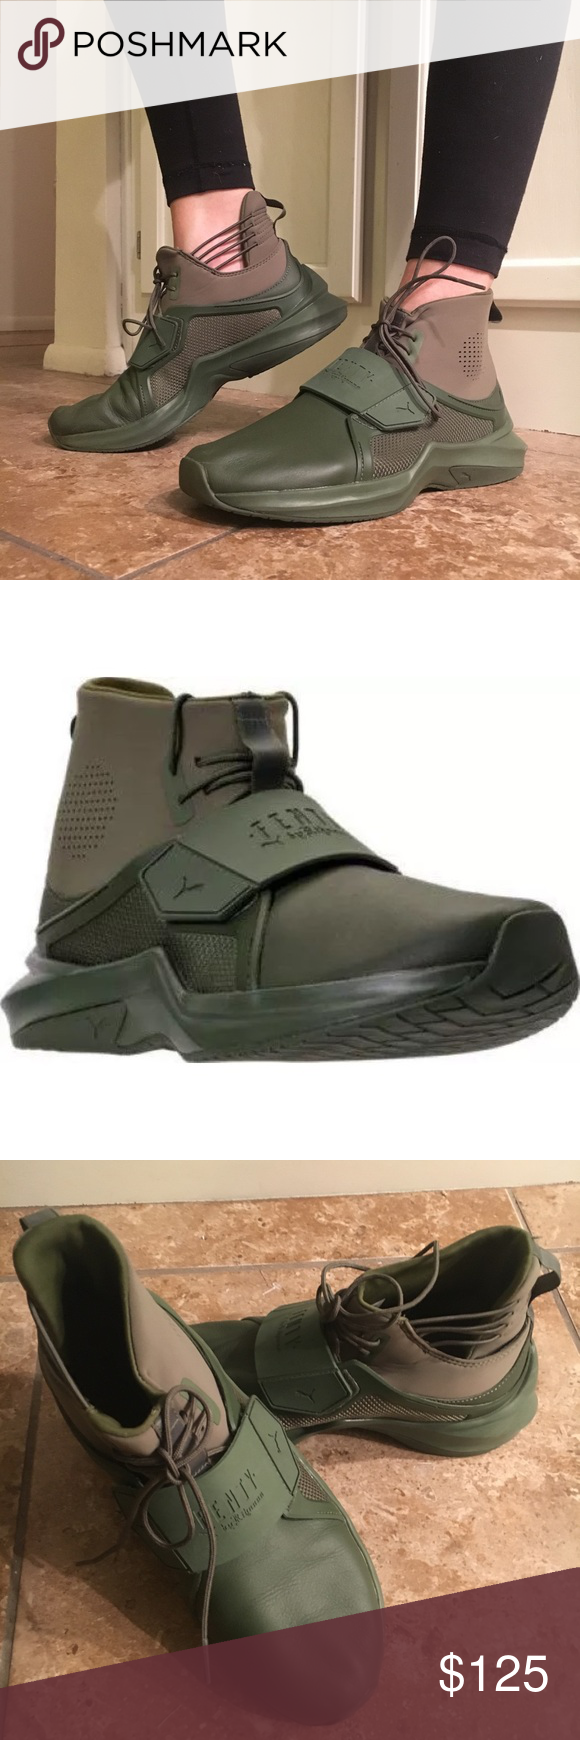 new style d131a 7e8bd Puma x FENTY ignite sneaker Worn once, like new condition ...